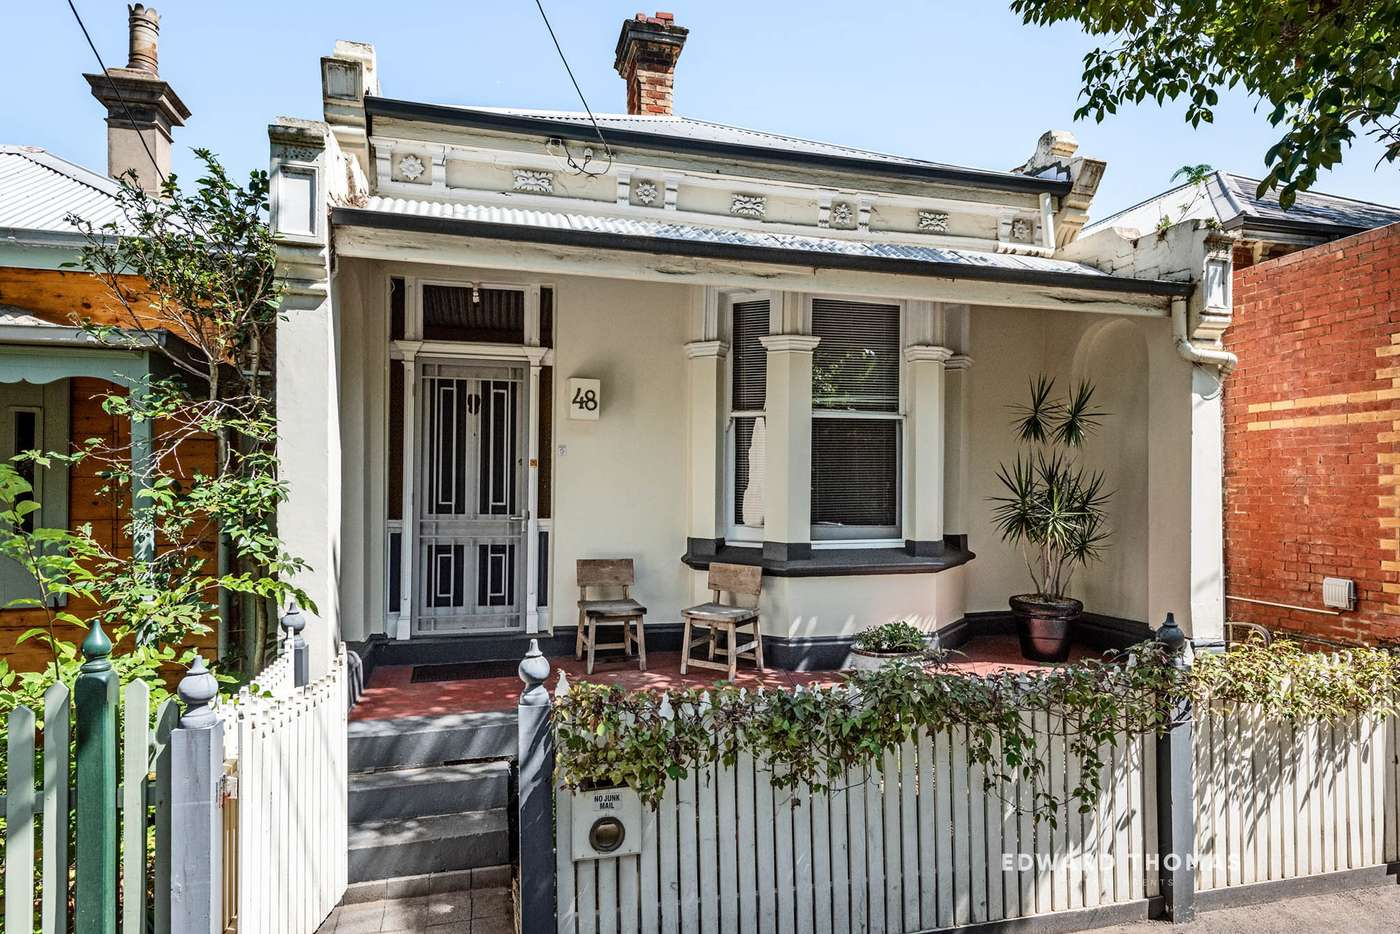 Main view of Homely house listing, 48 Bellair Street, Kensington VIC 3031